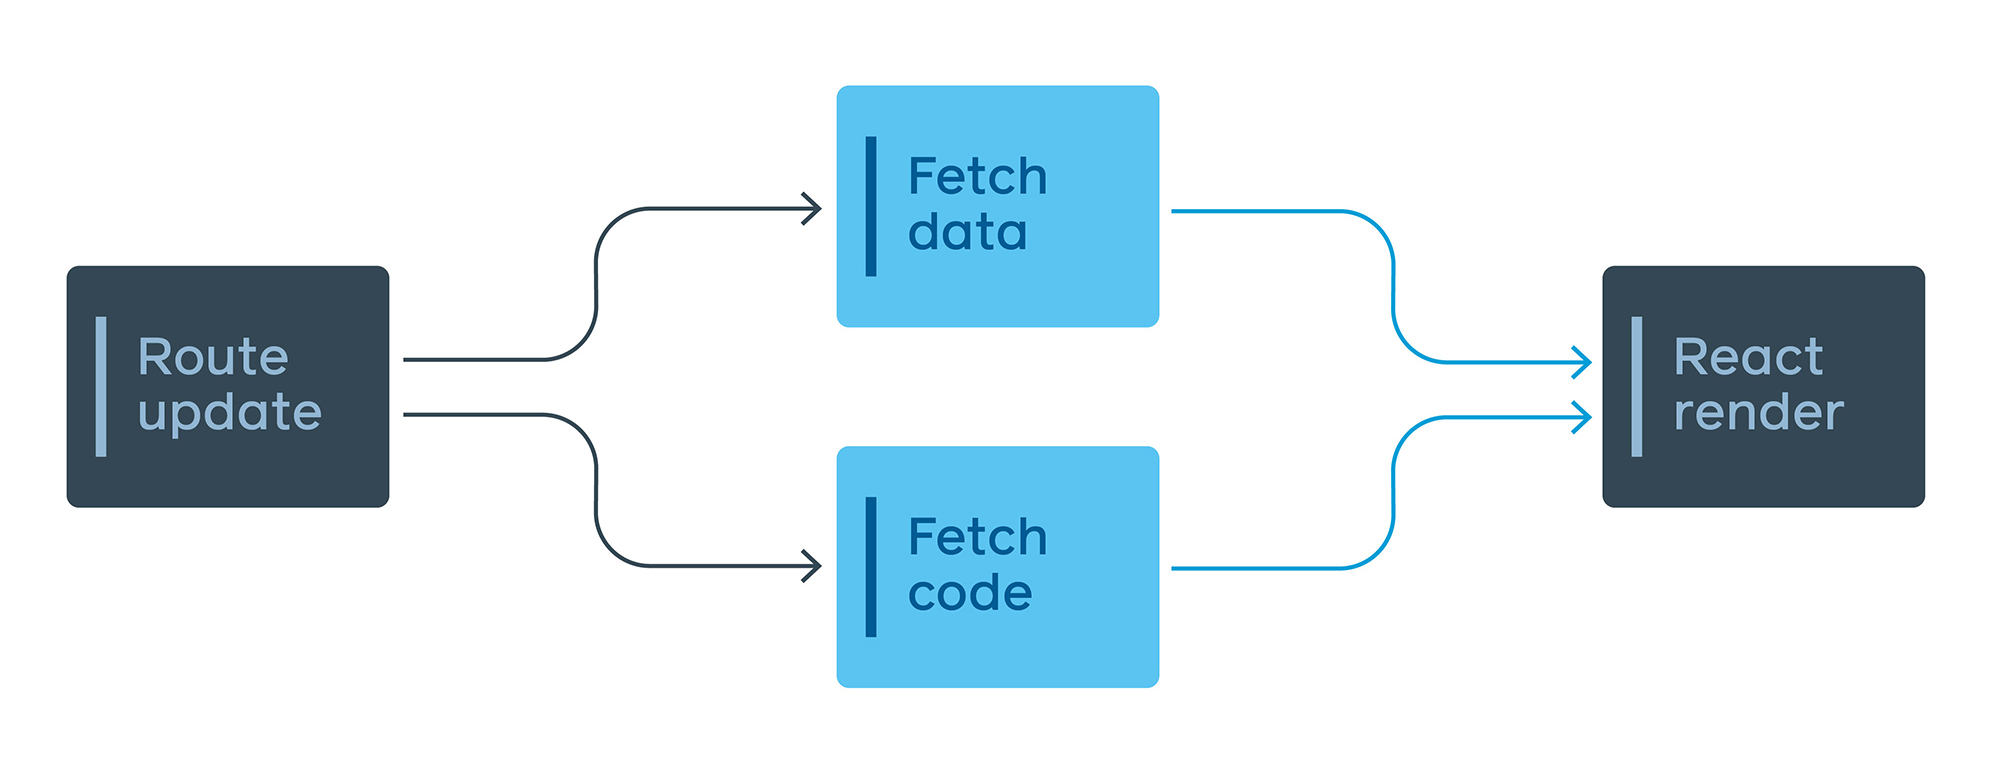 Code and data are fetched in parallel, allowing us to download these in a single network round trip.